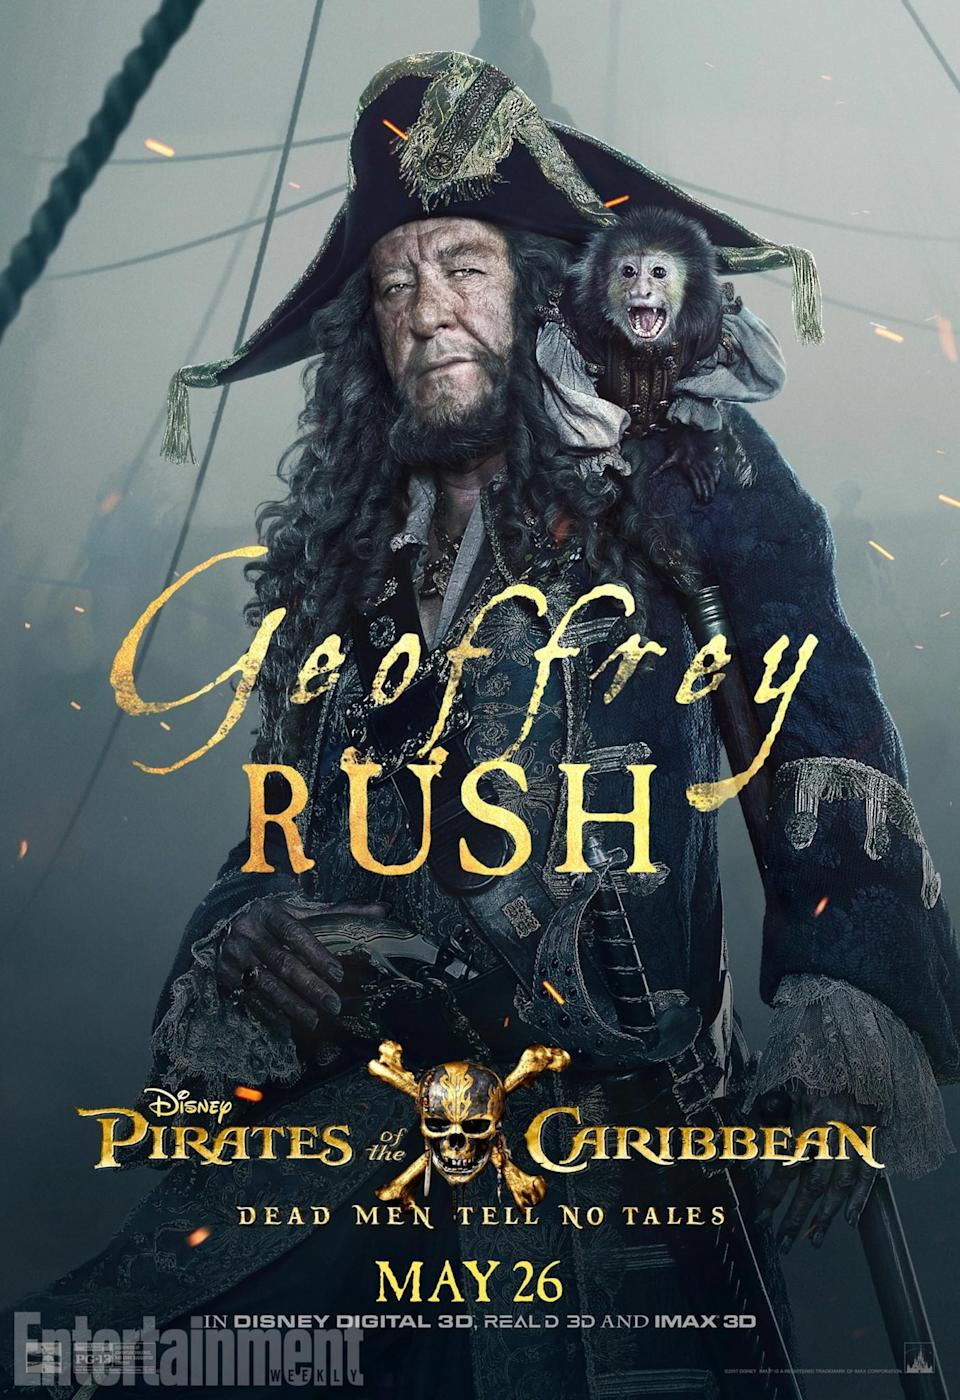 <p>Also returning for another voyage, it's Geoffrey Rush as Captain Barbossa. He's the villain, turned ally, turned villain, turned ally… and this time, it looks as though he'll be teaming up with Captain jack to help put a stop to the villainous Salazar. Can he be trusted? Not likely.<br>(Credit: Disney) </p>